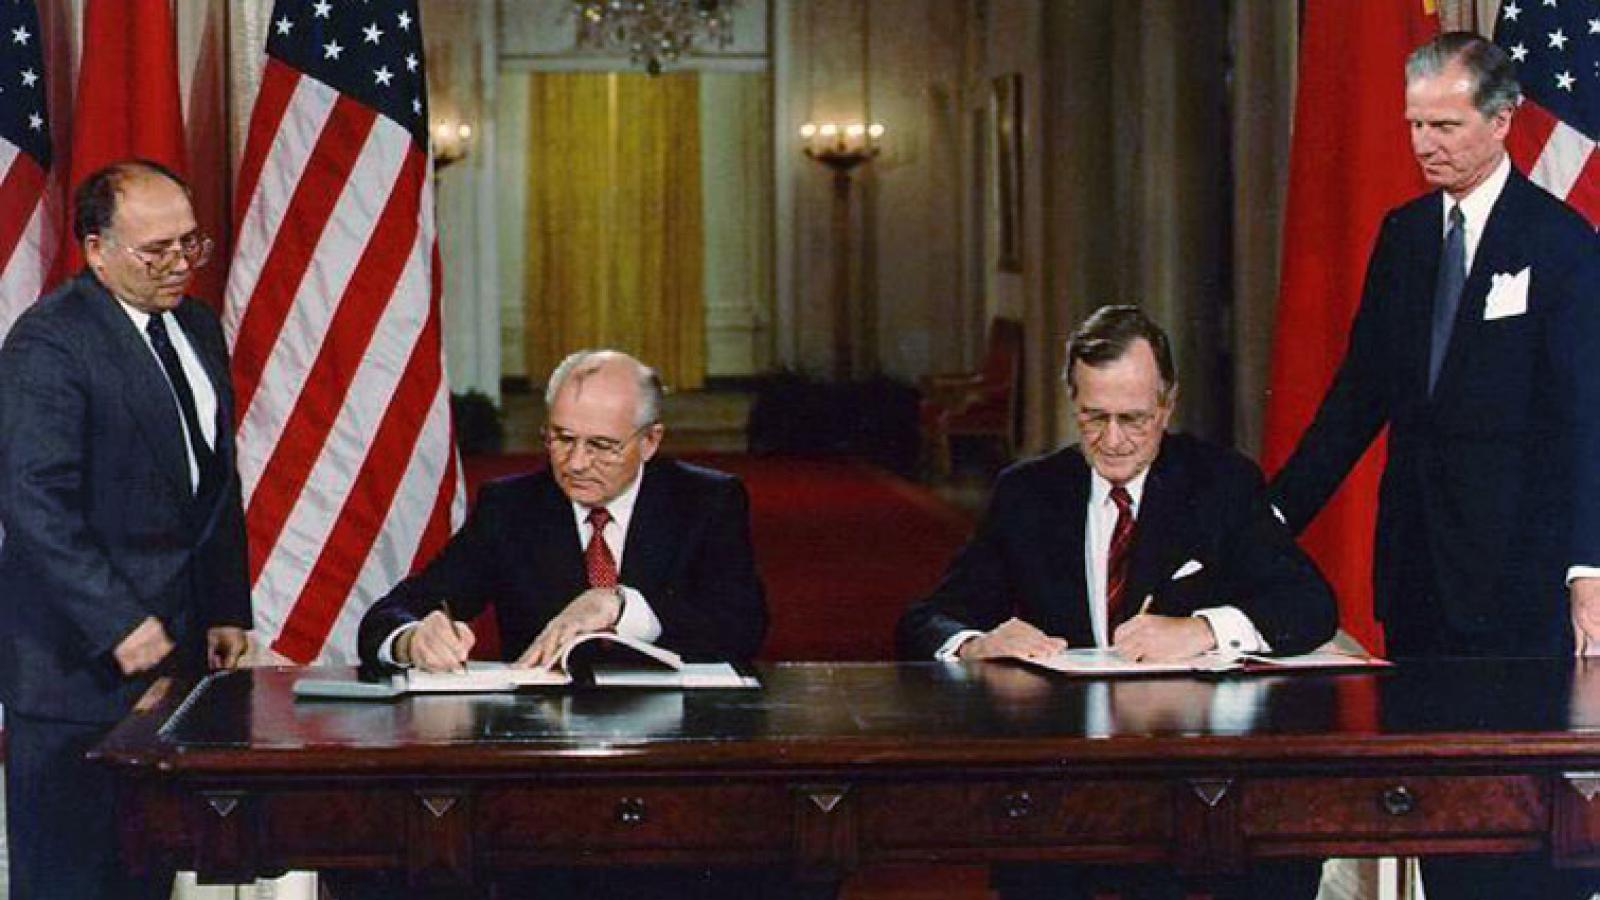 Mikhail Gorbachev and George H.W. Bush